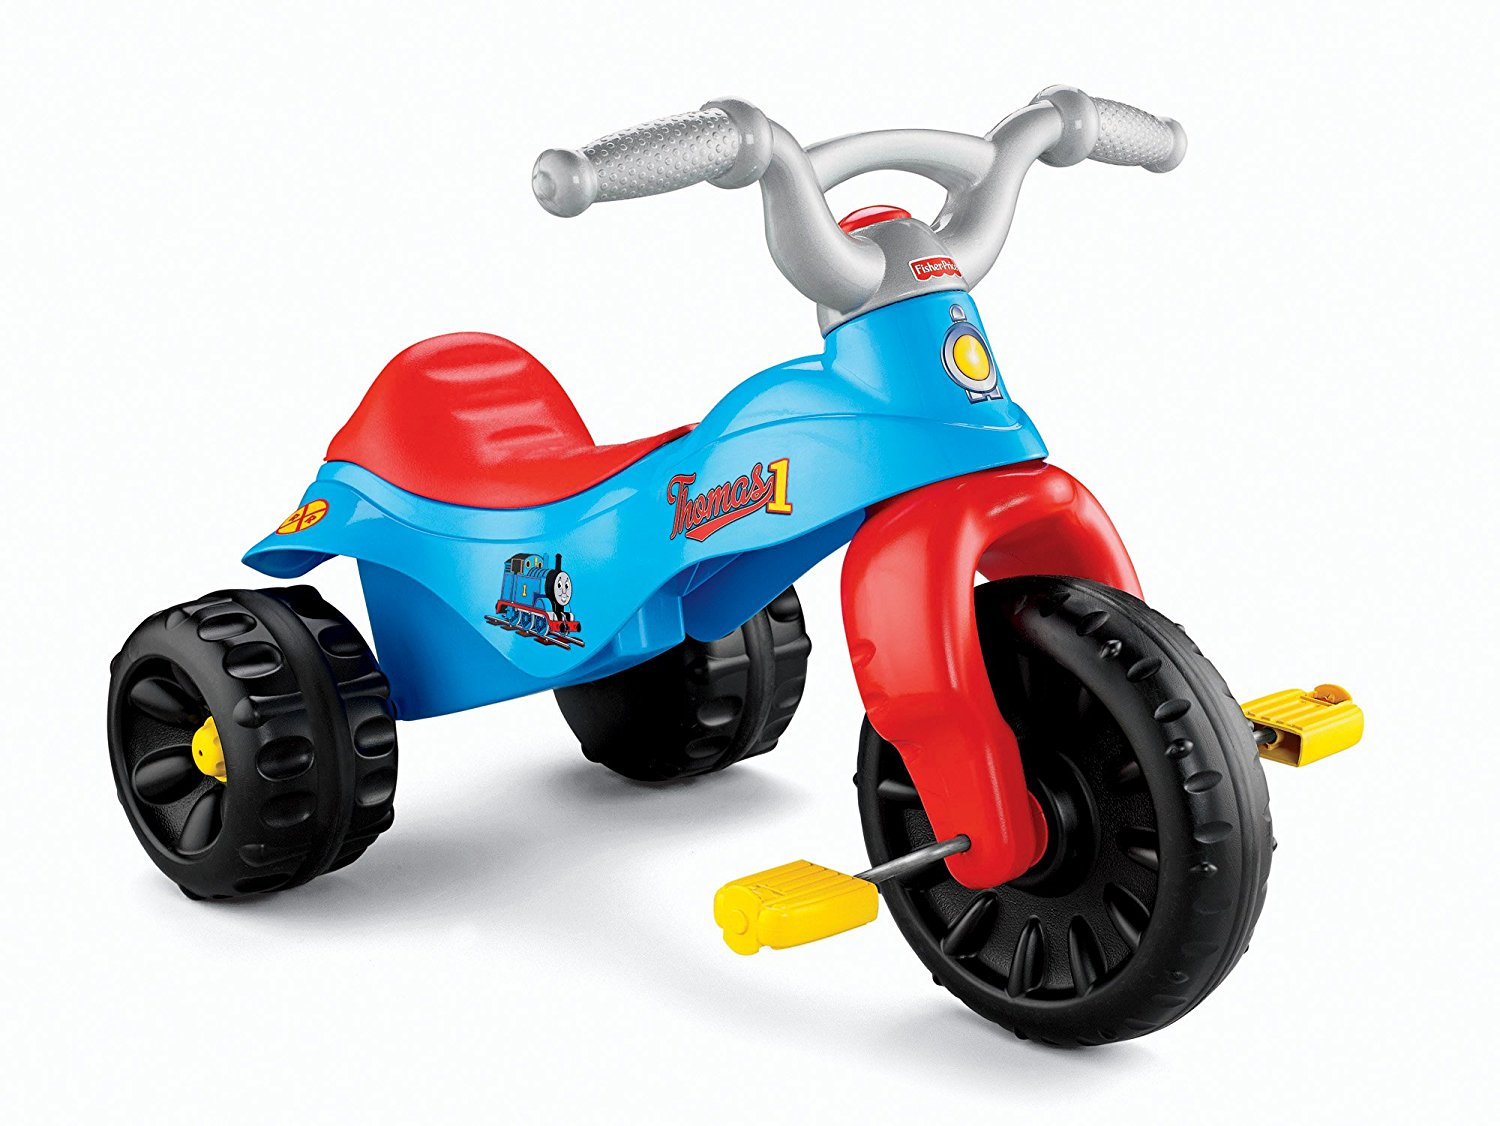 PNG Tricycle - 56856